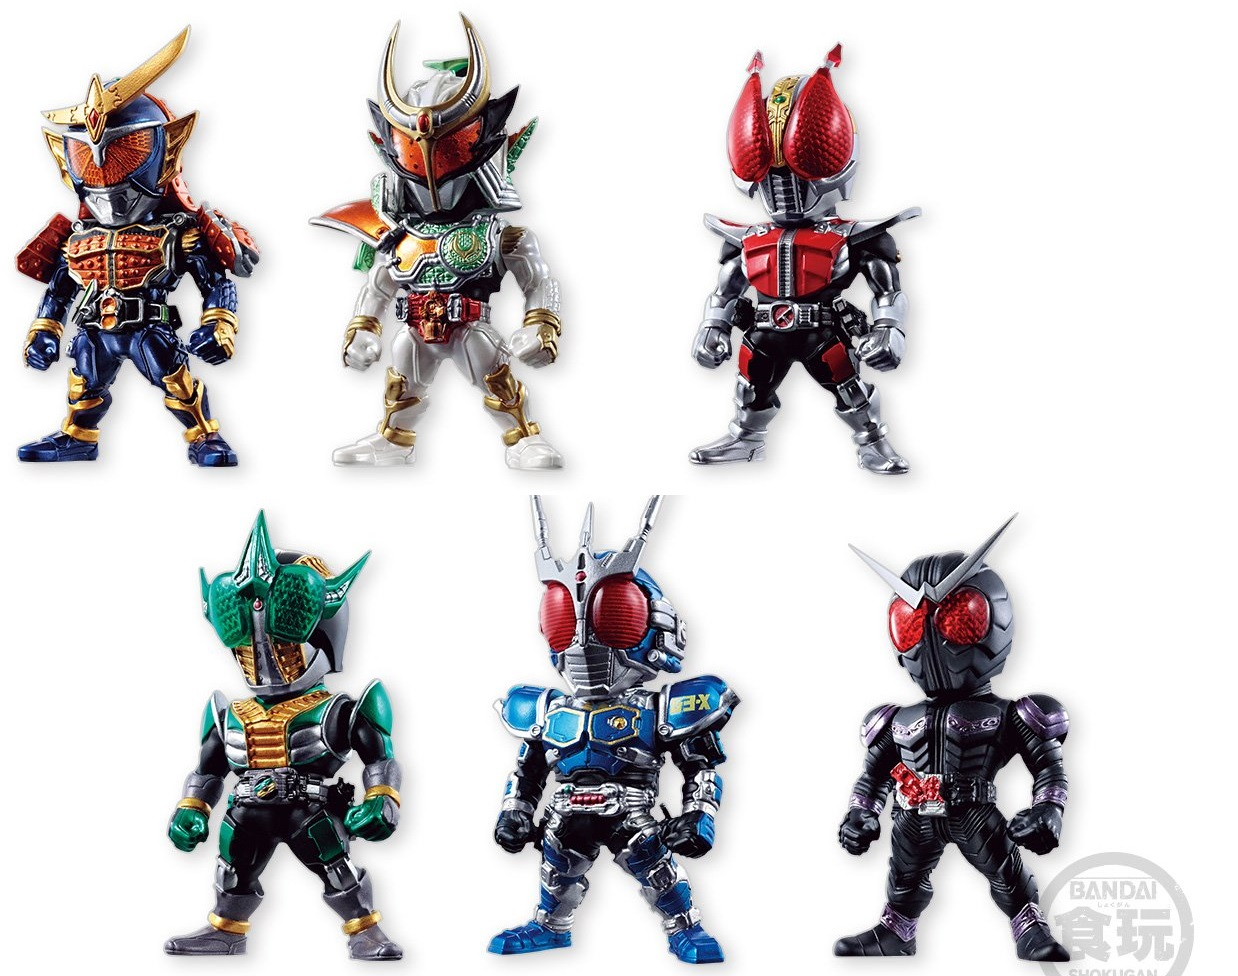 Converge Kamen Rider 6 Set Announced